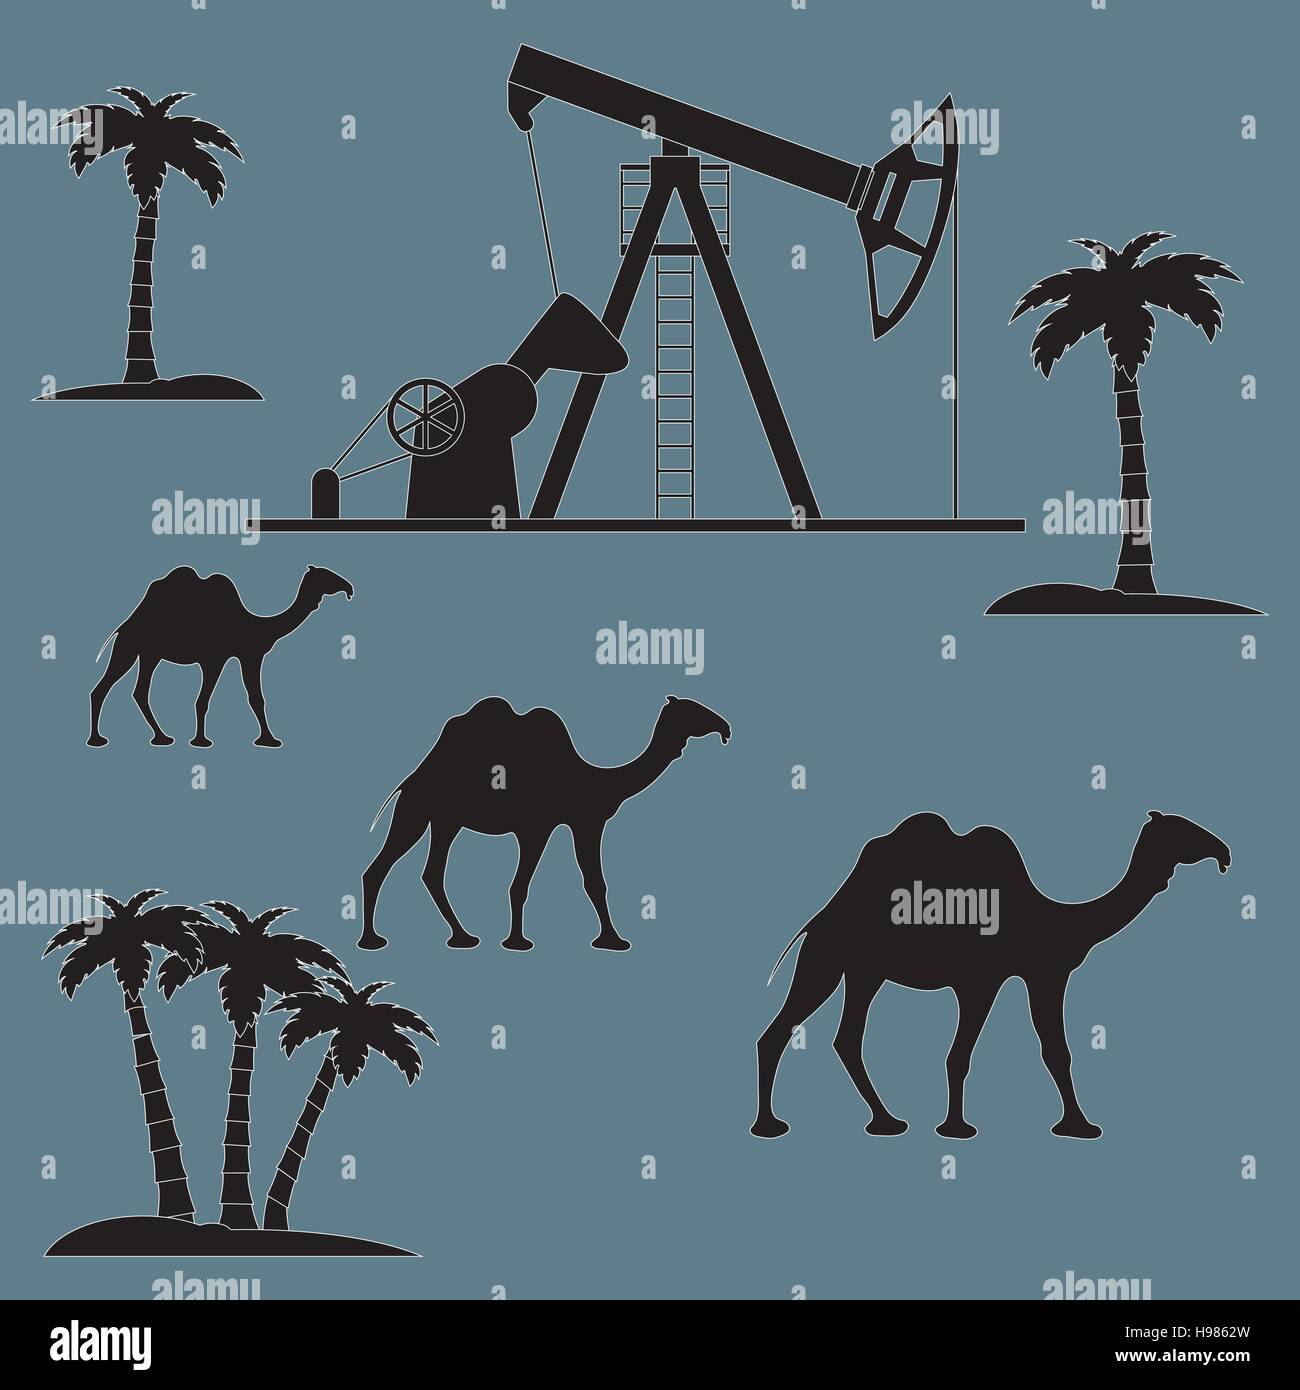 Stylized Icon Of The Equipment For Oil Production On A Color Background With Palm Trees And